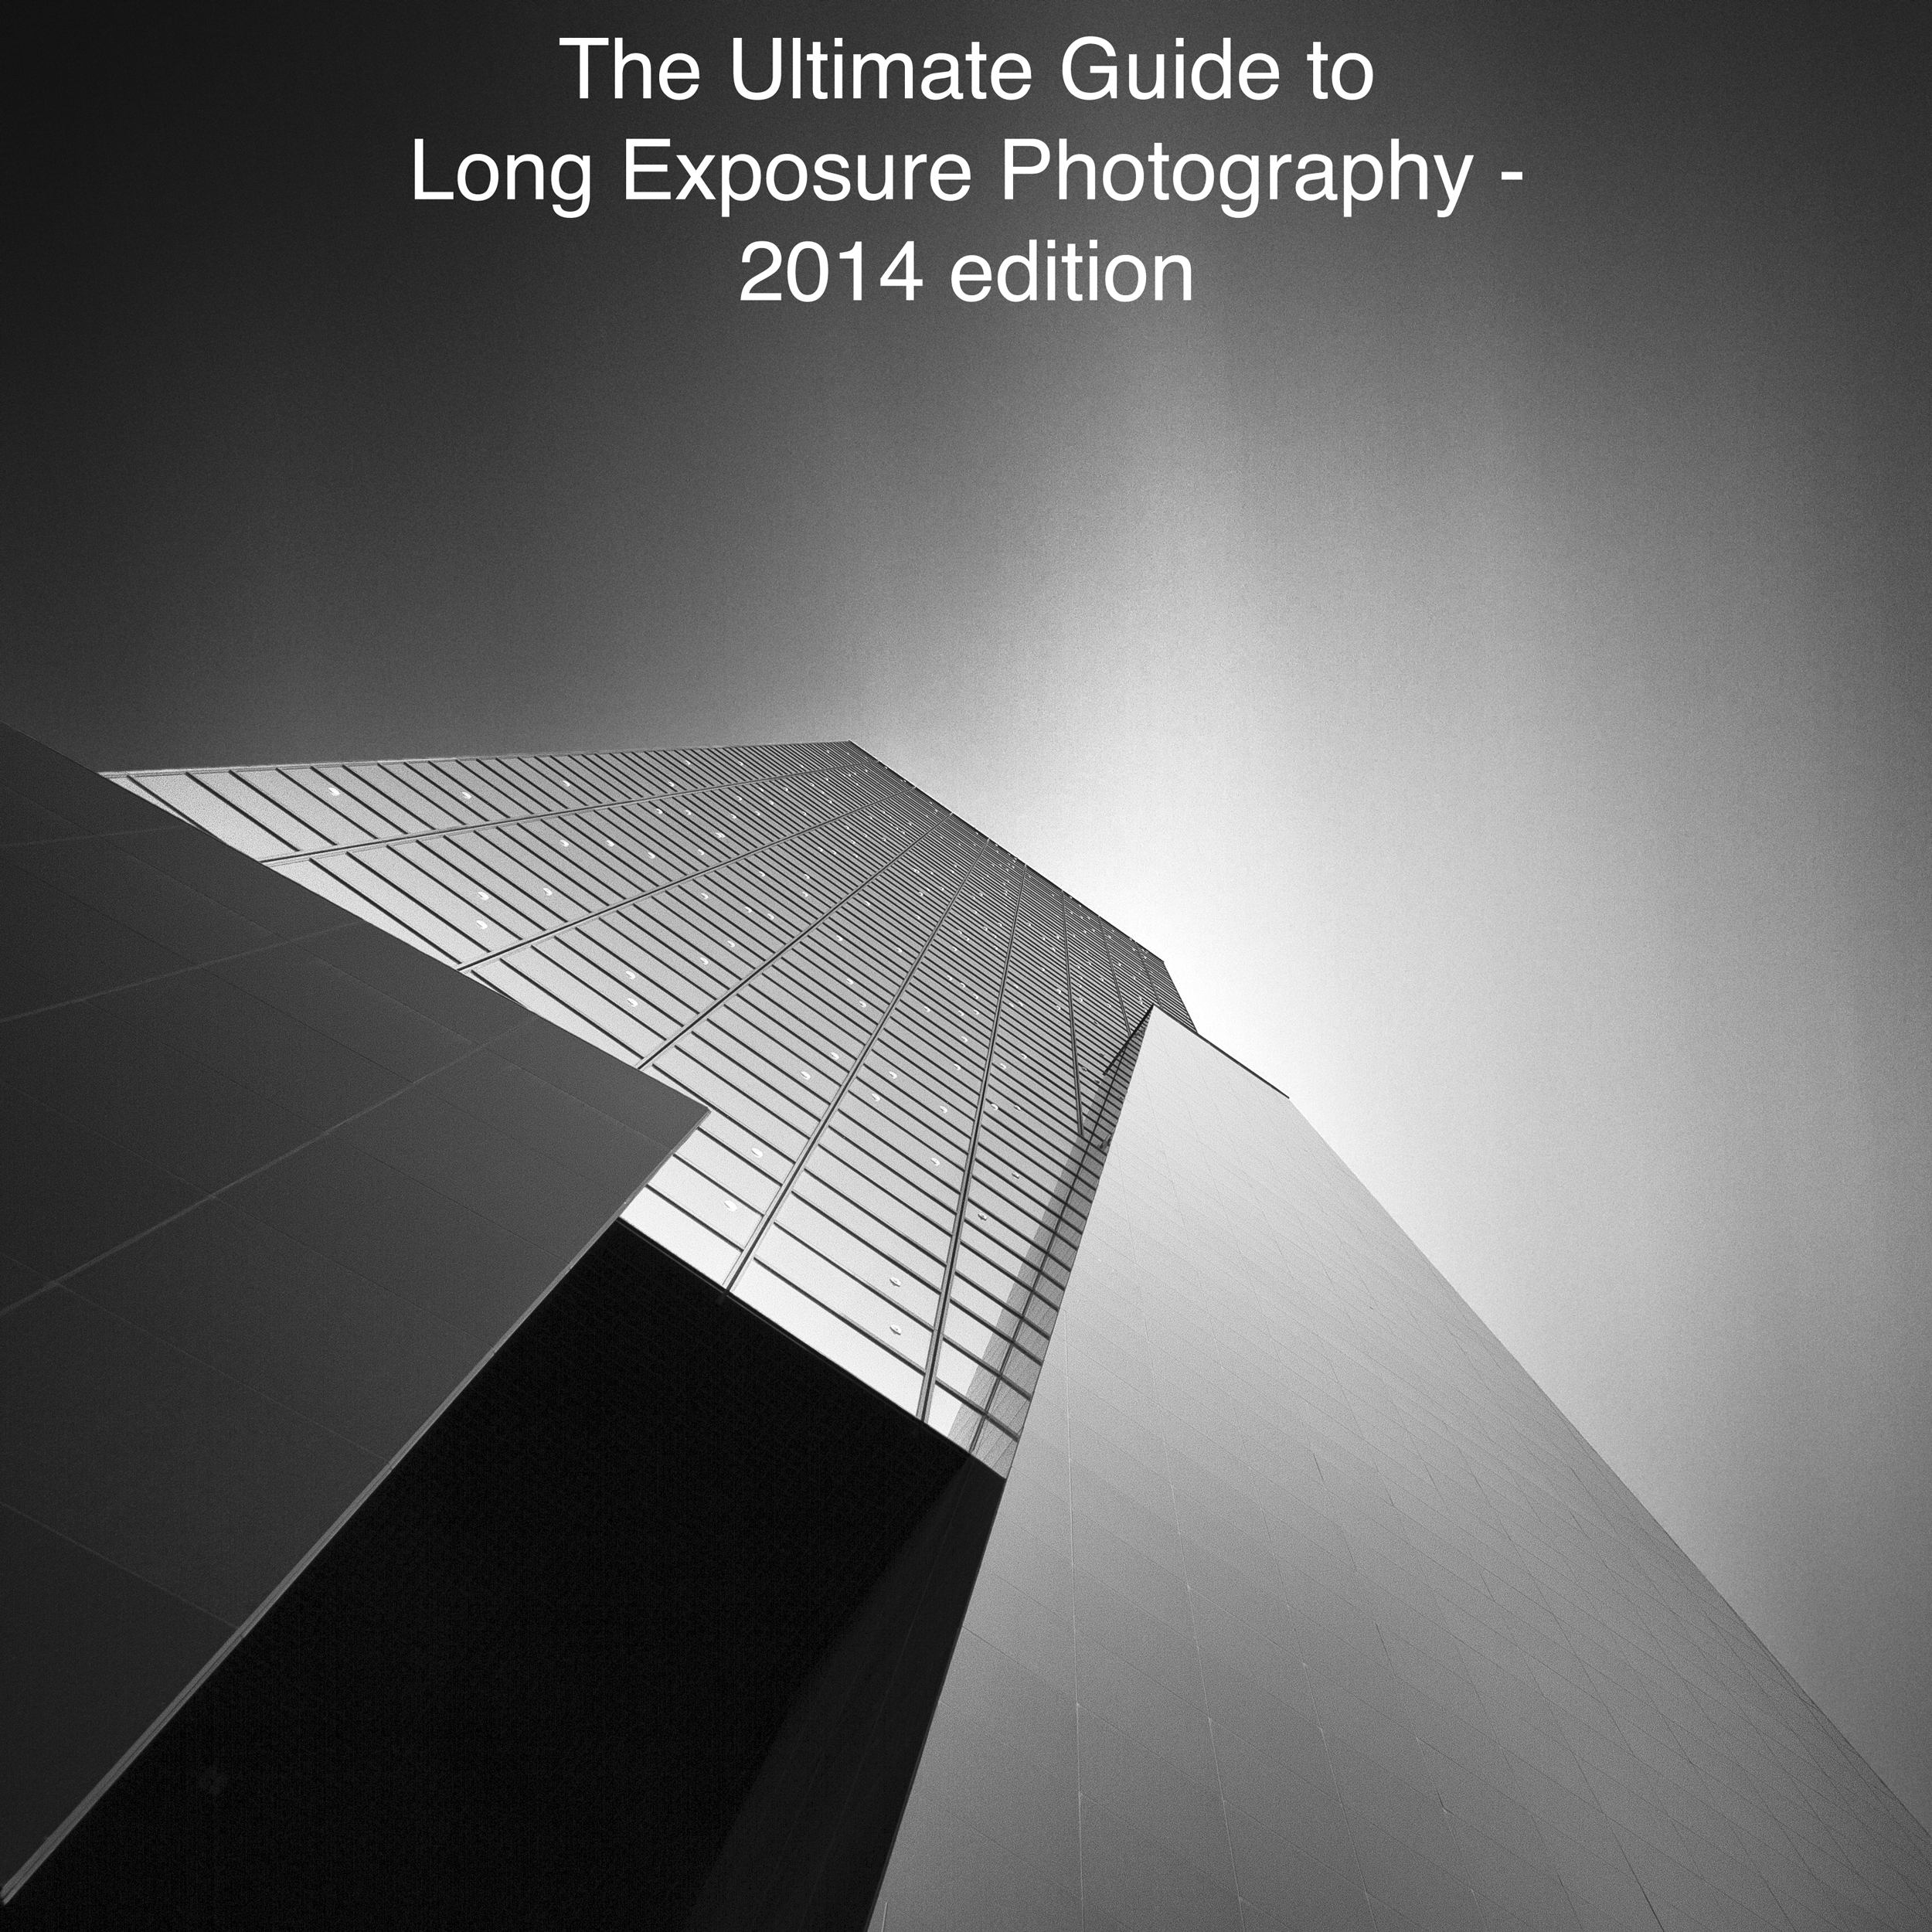 The ultimate guide to long exposure photography 2014 edition